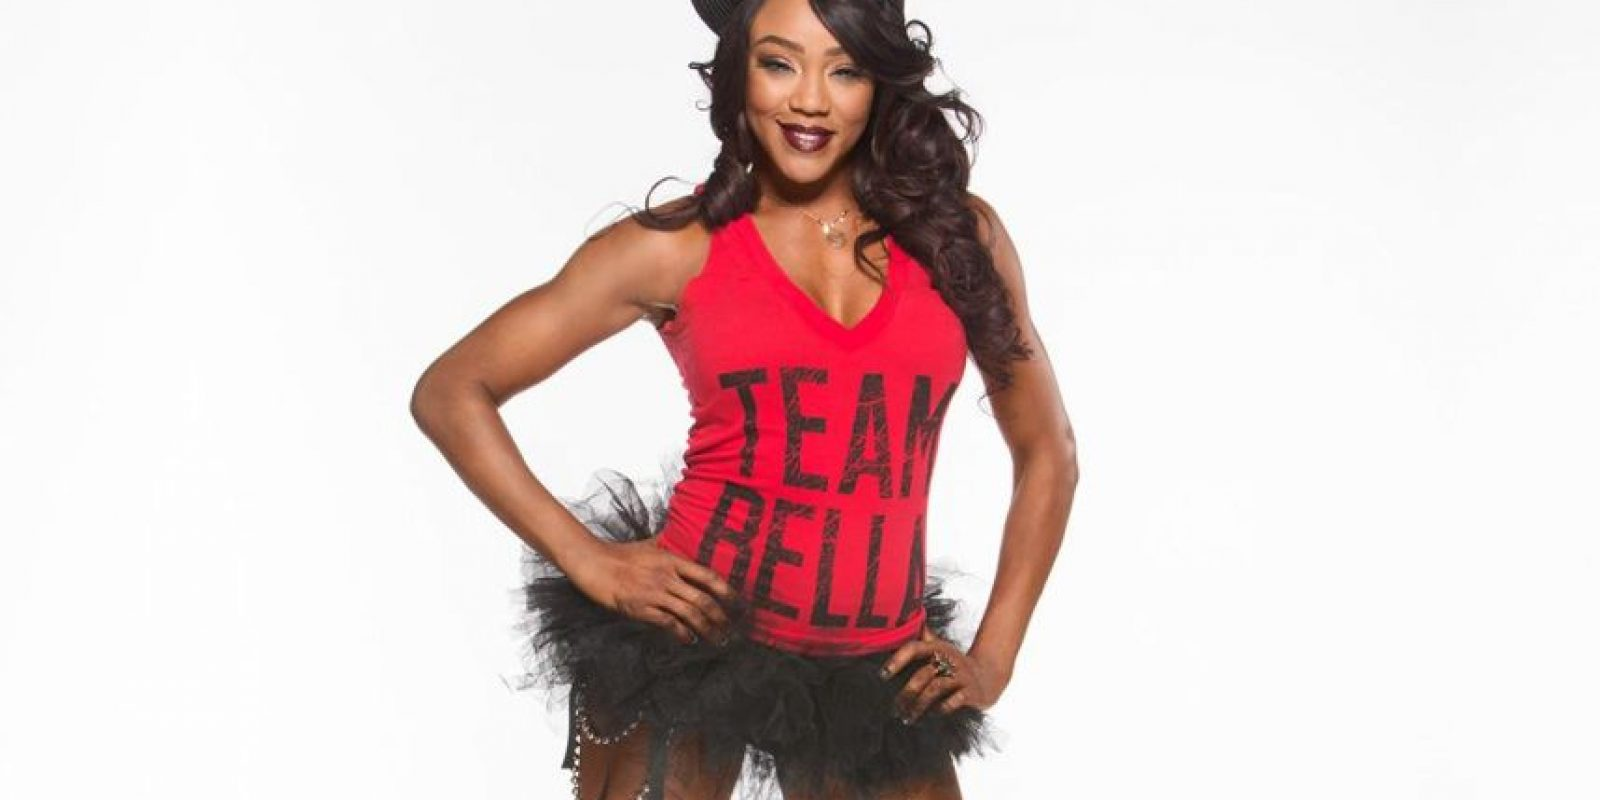 Alicia Fox. Foto: WWE